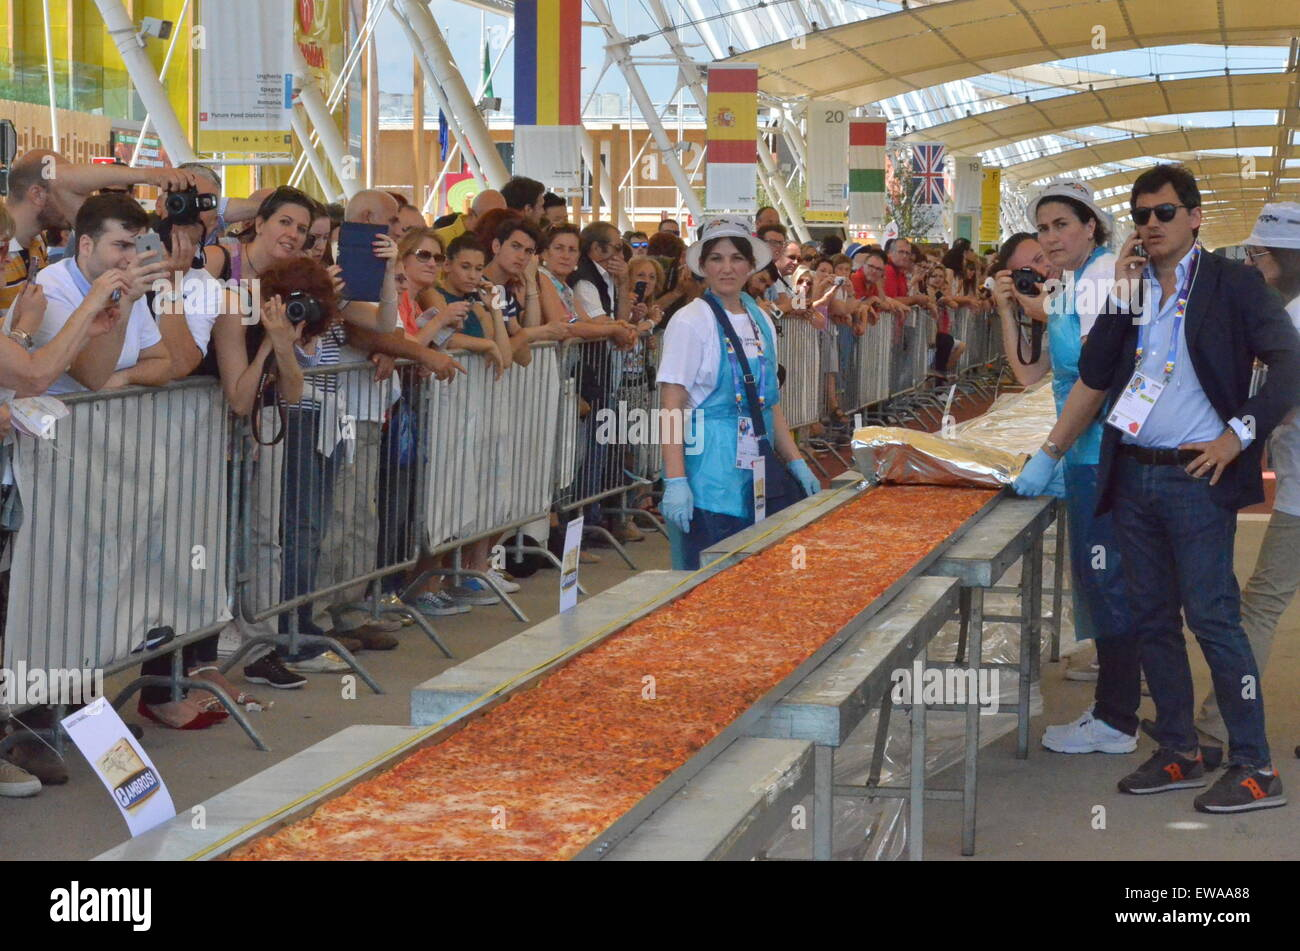 Milan, Italy. 20th June, 2015. Visitors look at the longest Pizza in the world with about 1,600 meters long at the - Stock Image